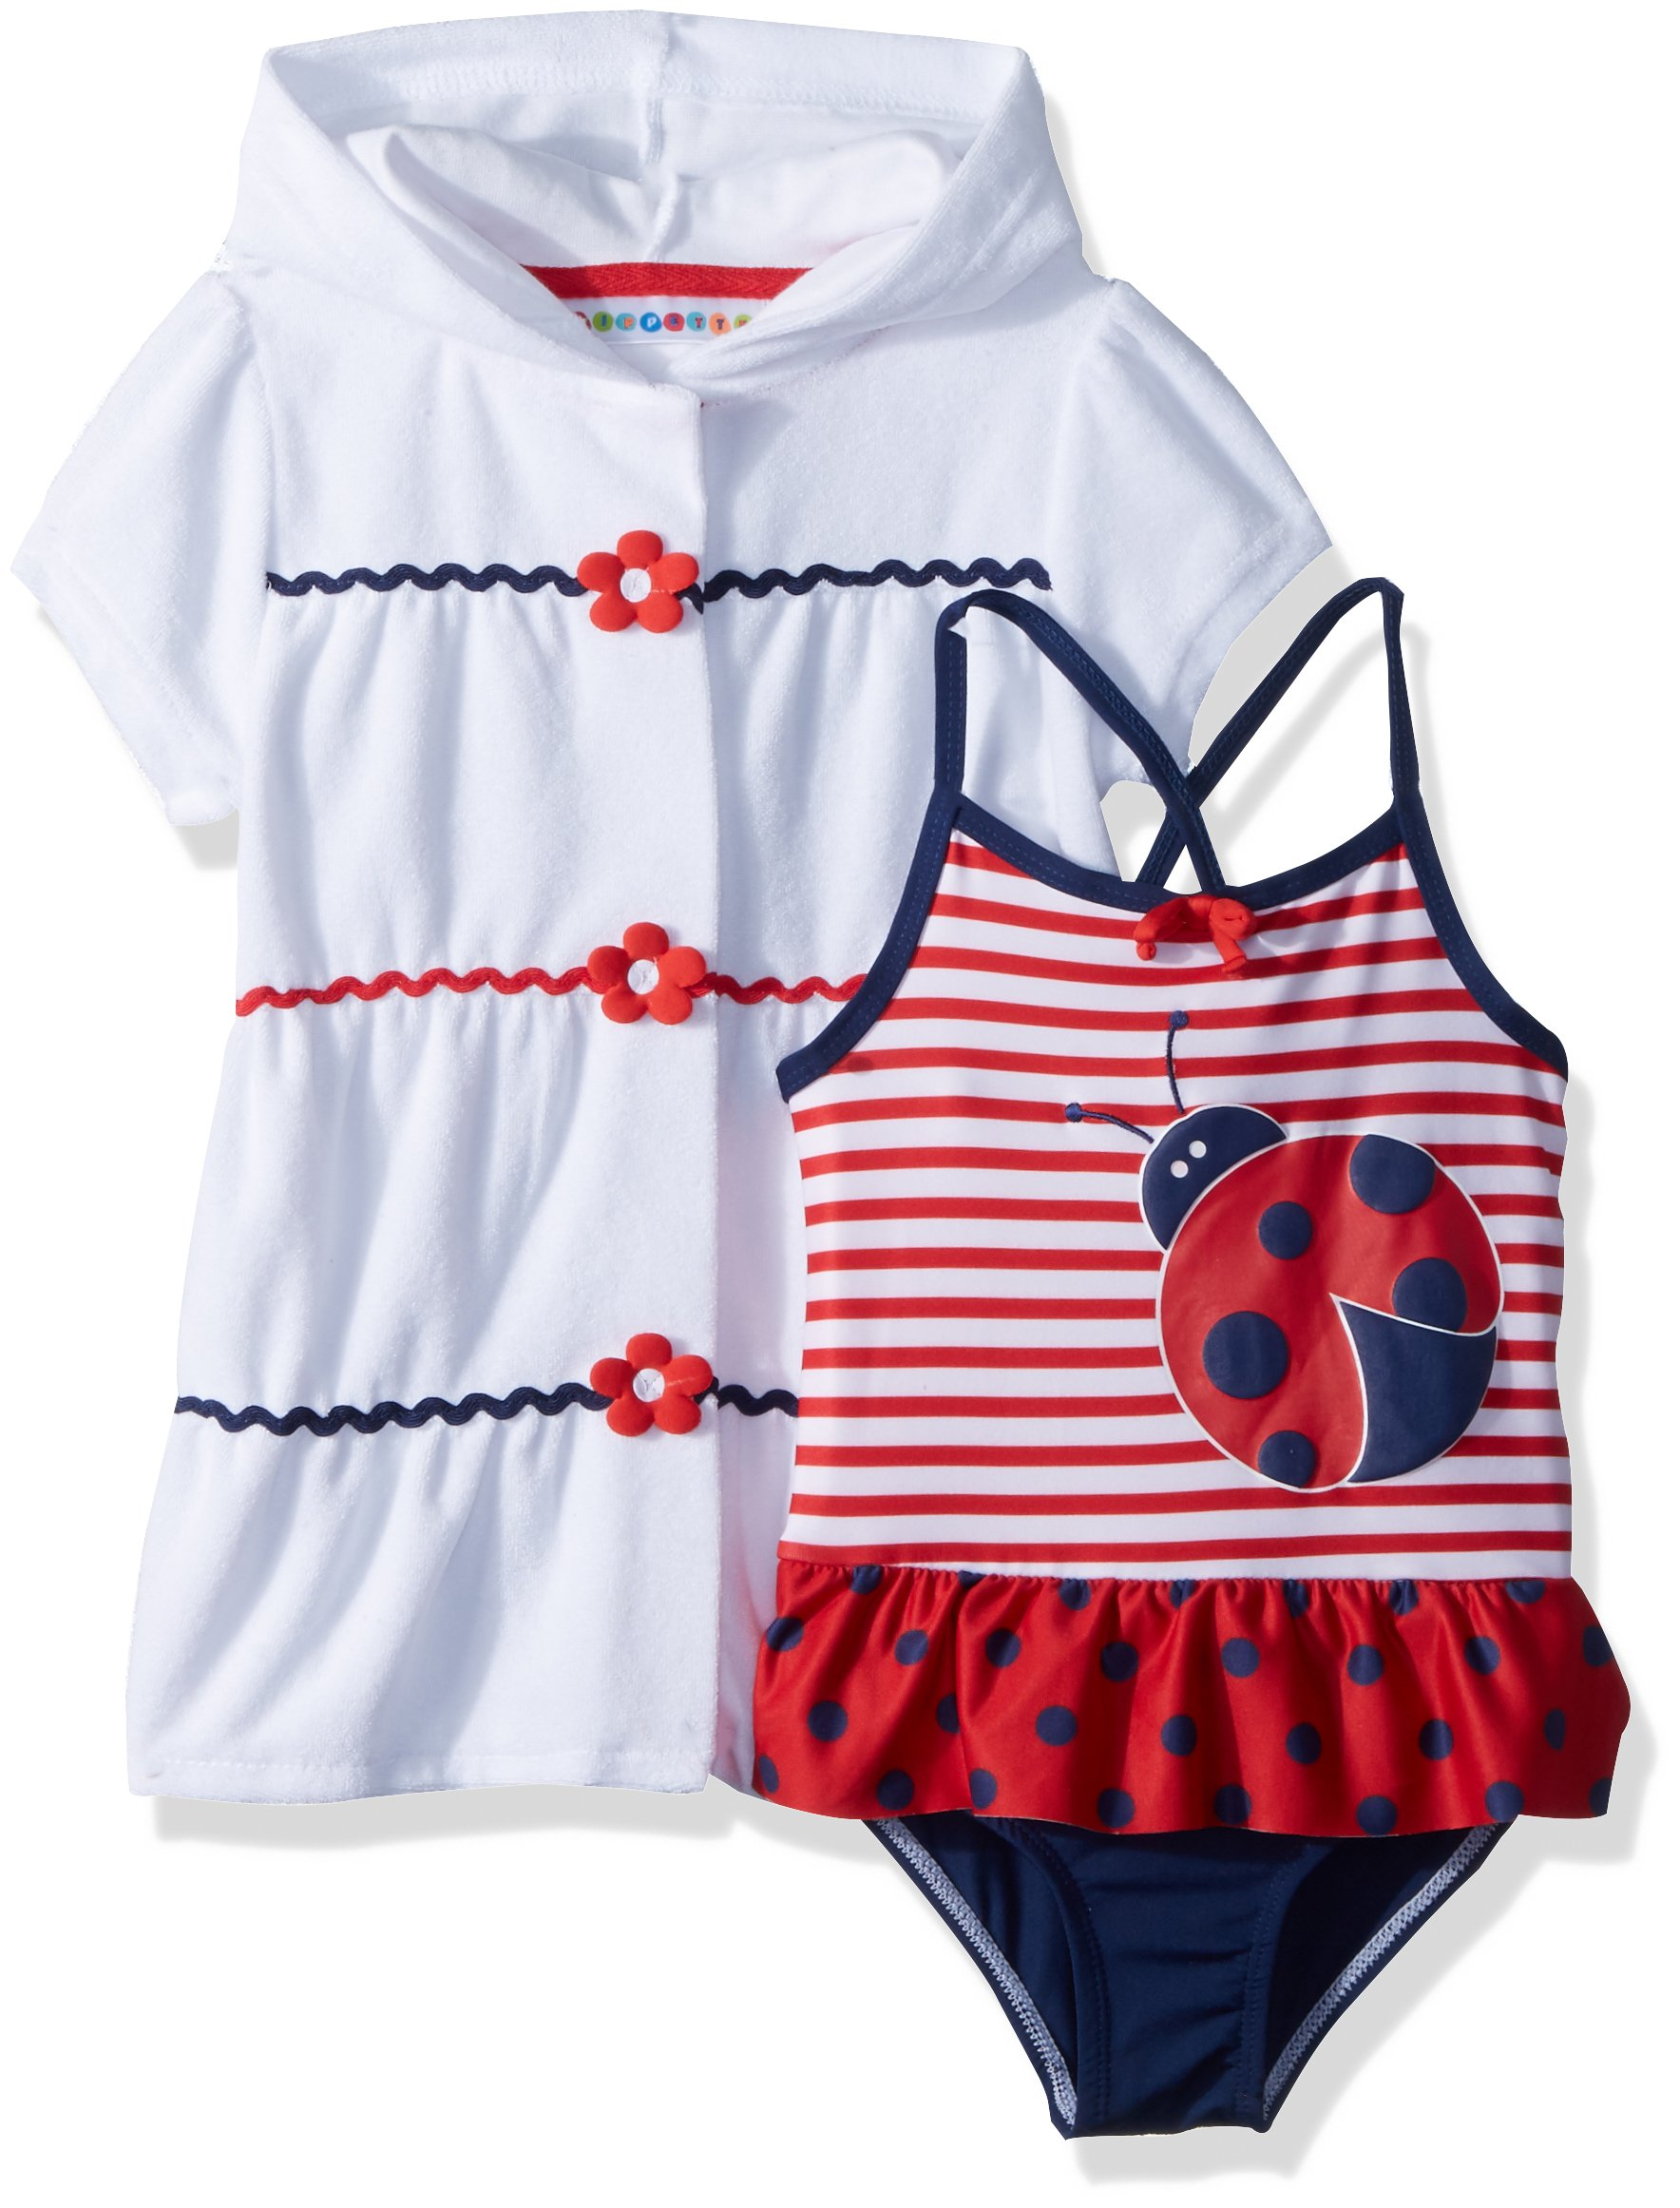 Wippette Toddler Girls' Coverup Set with Ladybug, Tomato, 4T